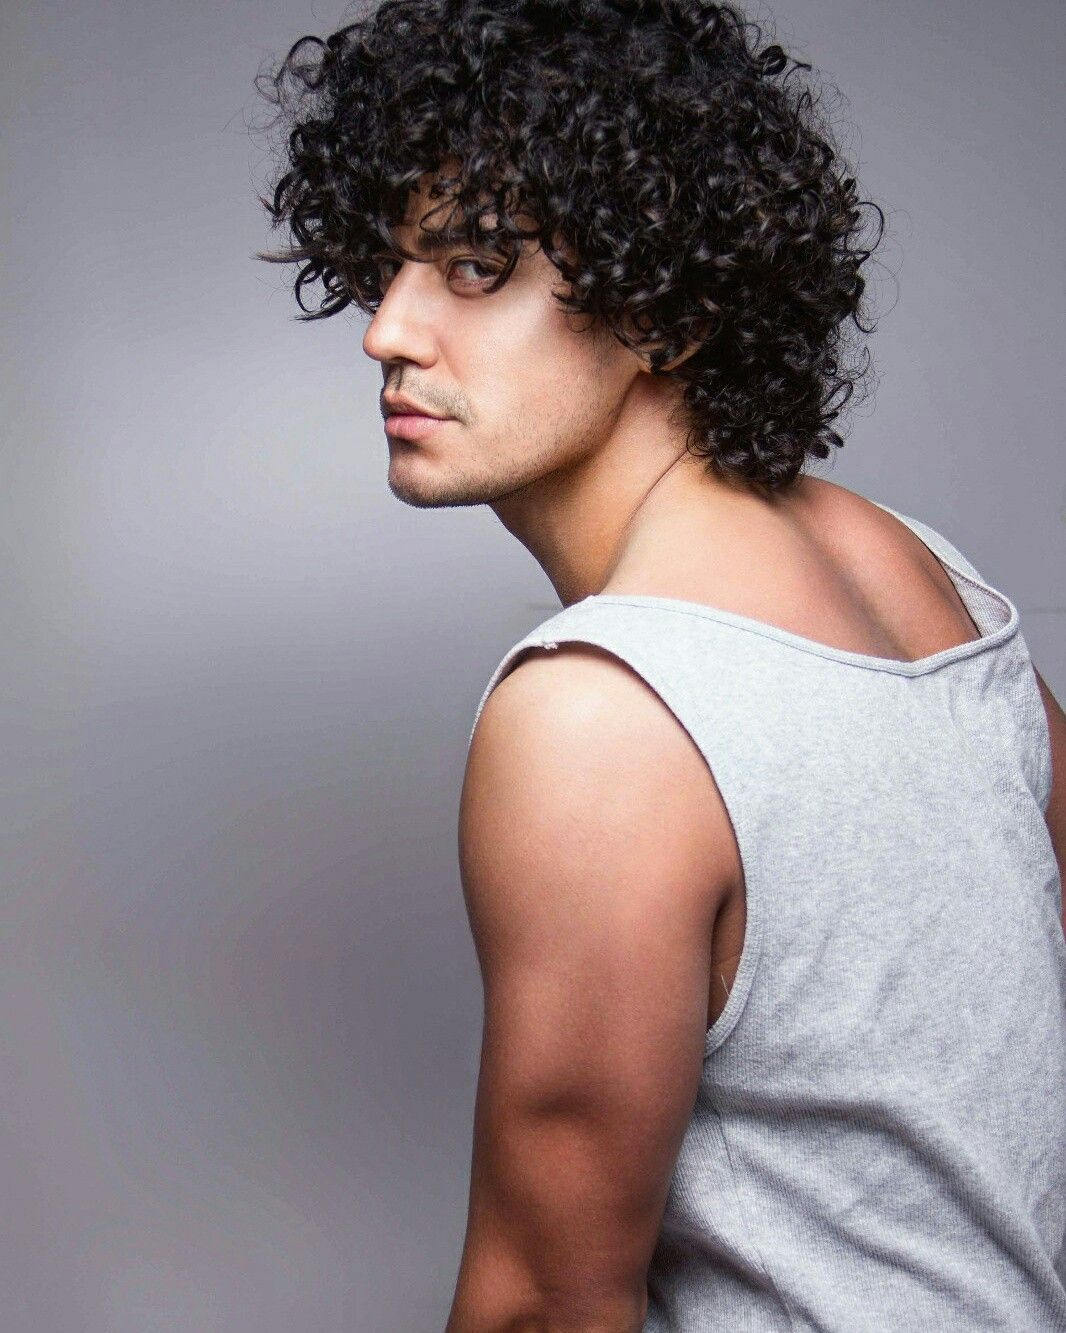 Black men curly haircuts curlyhair model sexy cheveuxboucle pelorizado modelo  ludwing